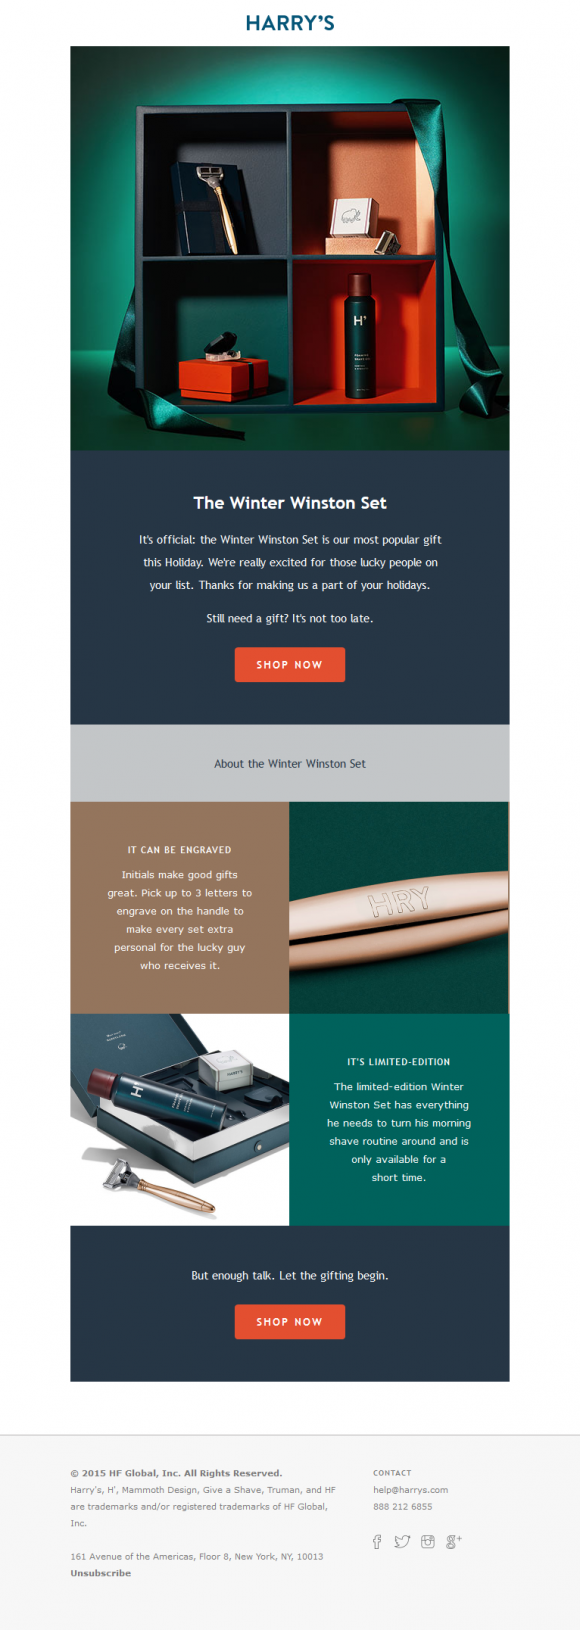 """harrys-email-example.png """"width ="""" 580 """"height ="""" 1630 """"srcset ="""" https://blog.hubspot.com/hs-fs/hubfs/harrys-email-example.png?t=1535436625787&width=290&height = 815 & name = harrys-email-example.png 290w, https://blog.hubspot.com/hs-fs/hubfs/harrys-email-example.png?t=1535436625787&width=580&height=1630&name=harrys-email-example. png 580w, https://blog.hubspot.com/hs-fs/hubfs/harrys-email-example.png?t=1535436625787&width=870&height=2445&name=harrys-email-example.png 870w, https: // blog. hubspot.com/hs-fs/hubfs/harrys-email-example.png?t=1535436625787&width=1160&height=3260&name=harrys-email-example.png 1160w, https://blog.hubspot.com/hs-fs/hubfs /harrys-email-example.png?t=1535436625787&width=1450&height=4075&name=harrys-email-example.png 1450w, https://blog.hubspot.com/hs-fs/hubfs/harrys-email-example.png? t = 1535436625787 & width = 1740 & height = 4890 & name = harrys-email-example.png 1740w """"sizes ="""" (larghezza massima: 580 px) 100vw, 580 px"""